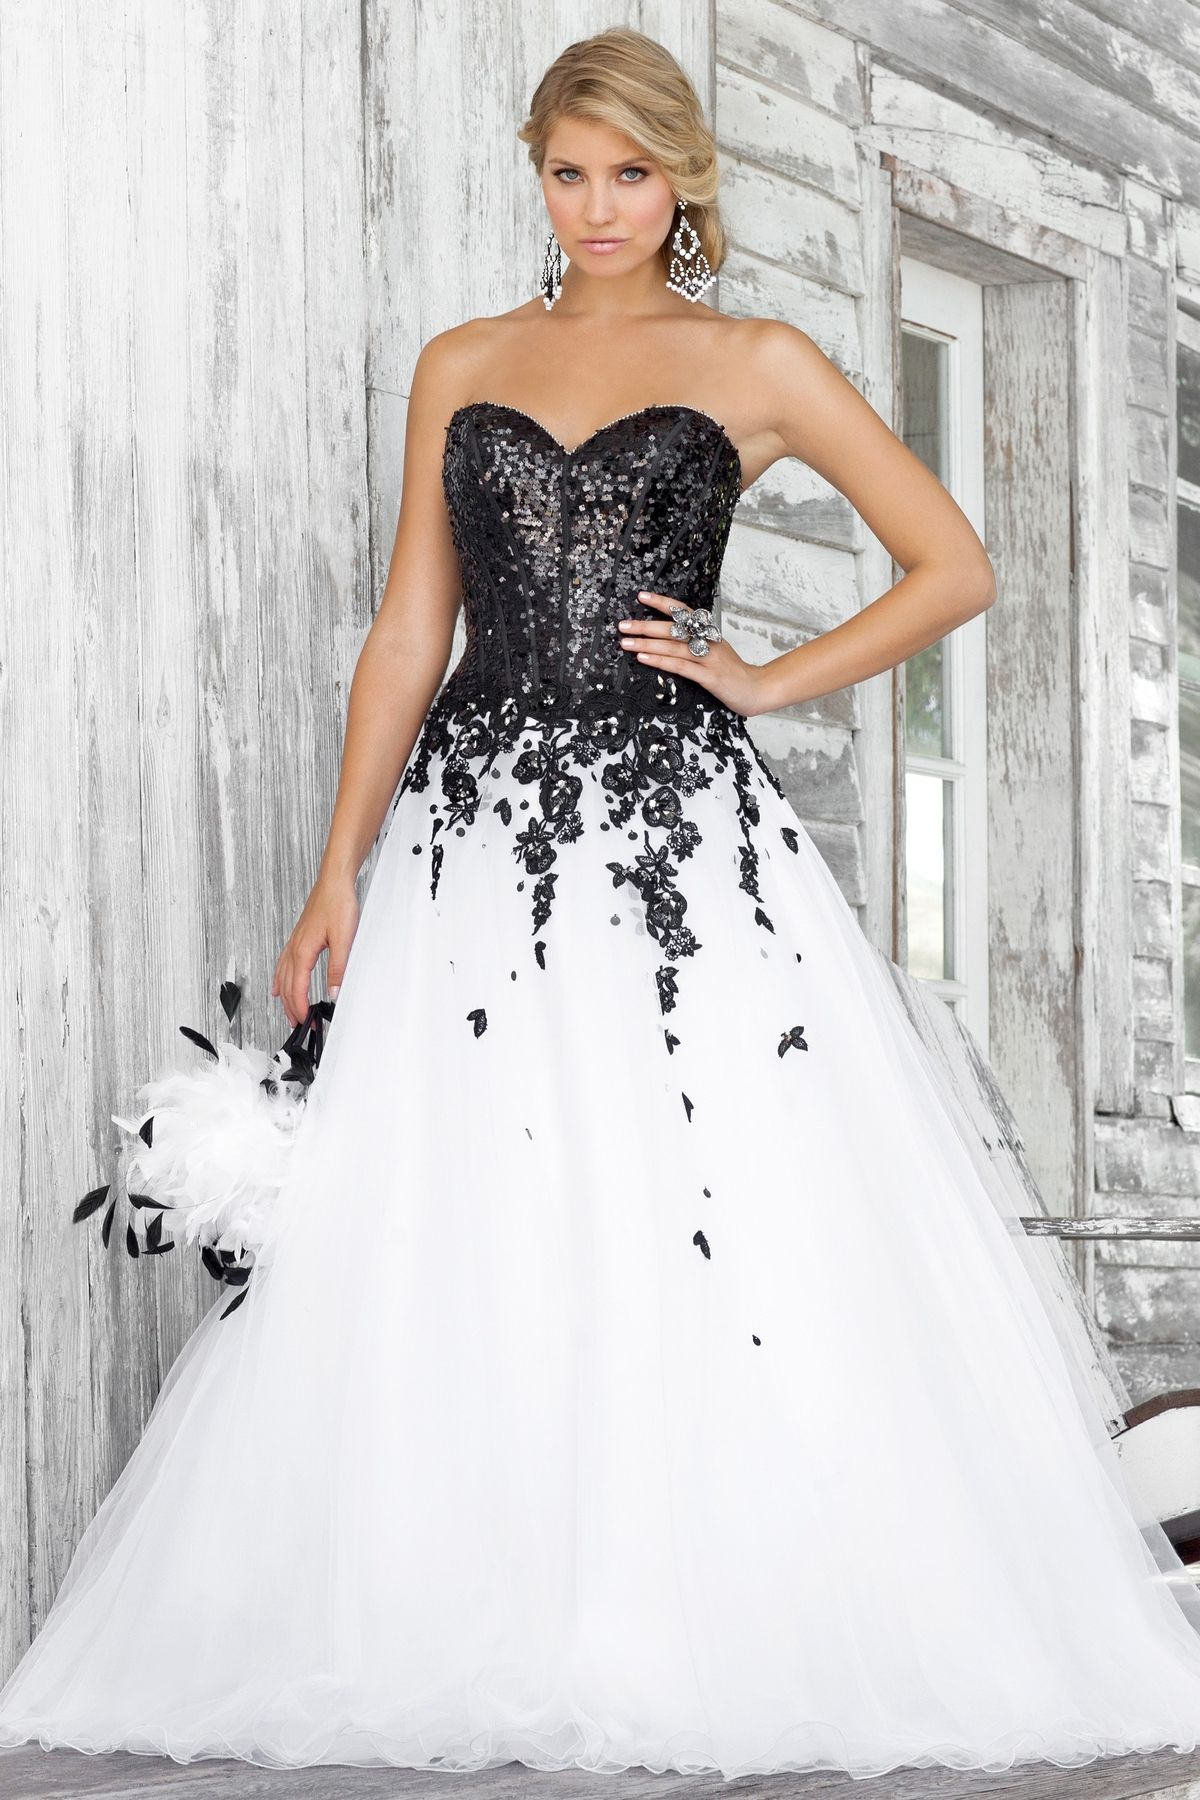 Luxury Black and White Wedding Dresses Plus Size Check more at ...